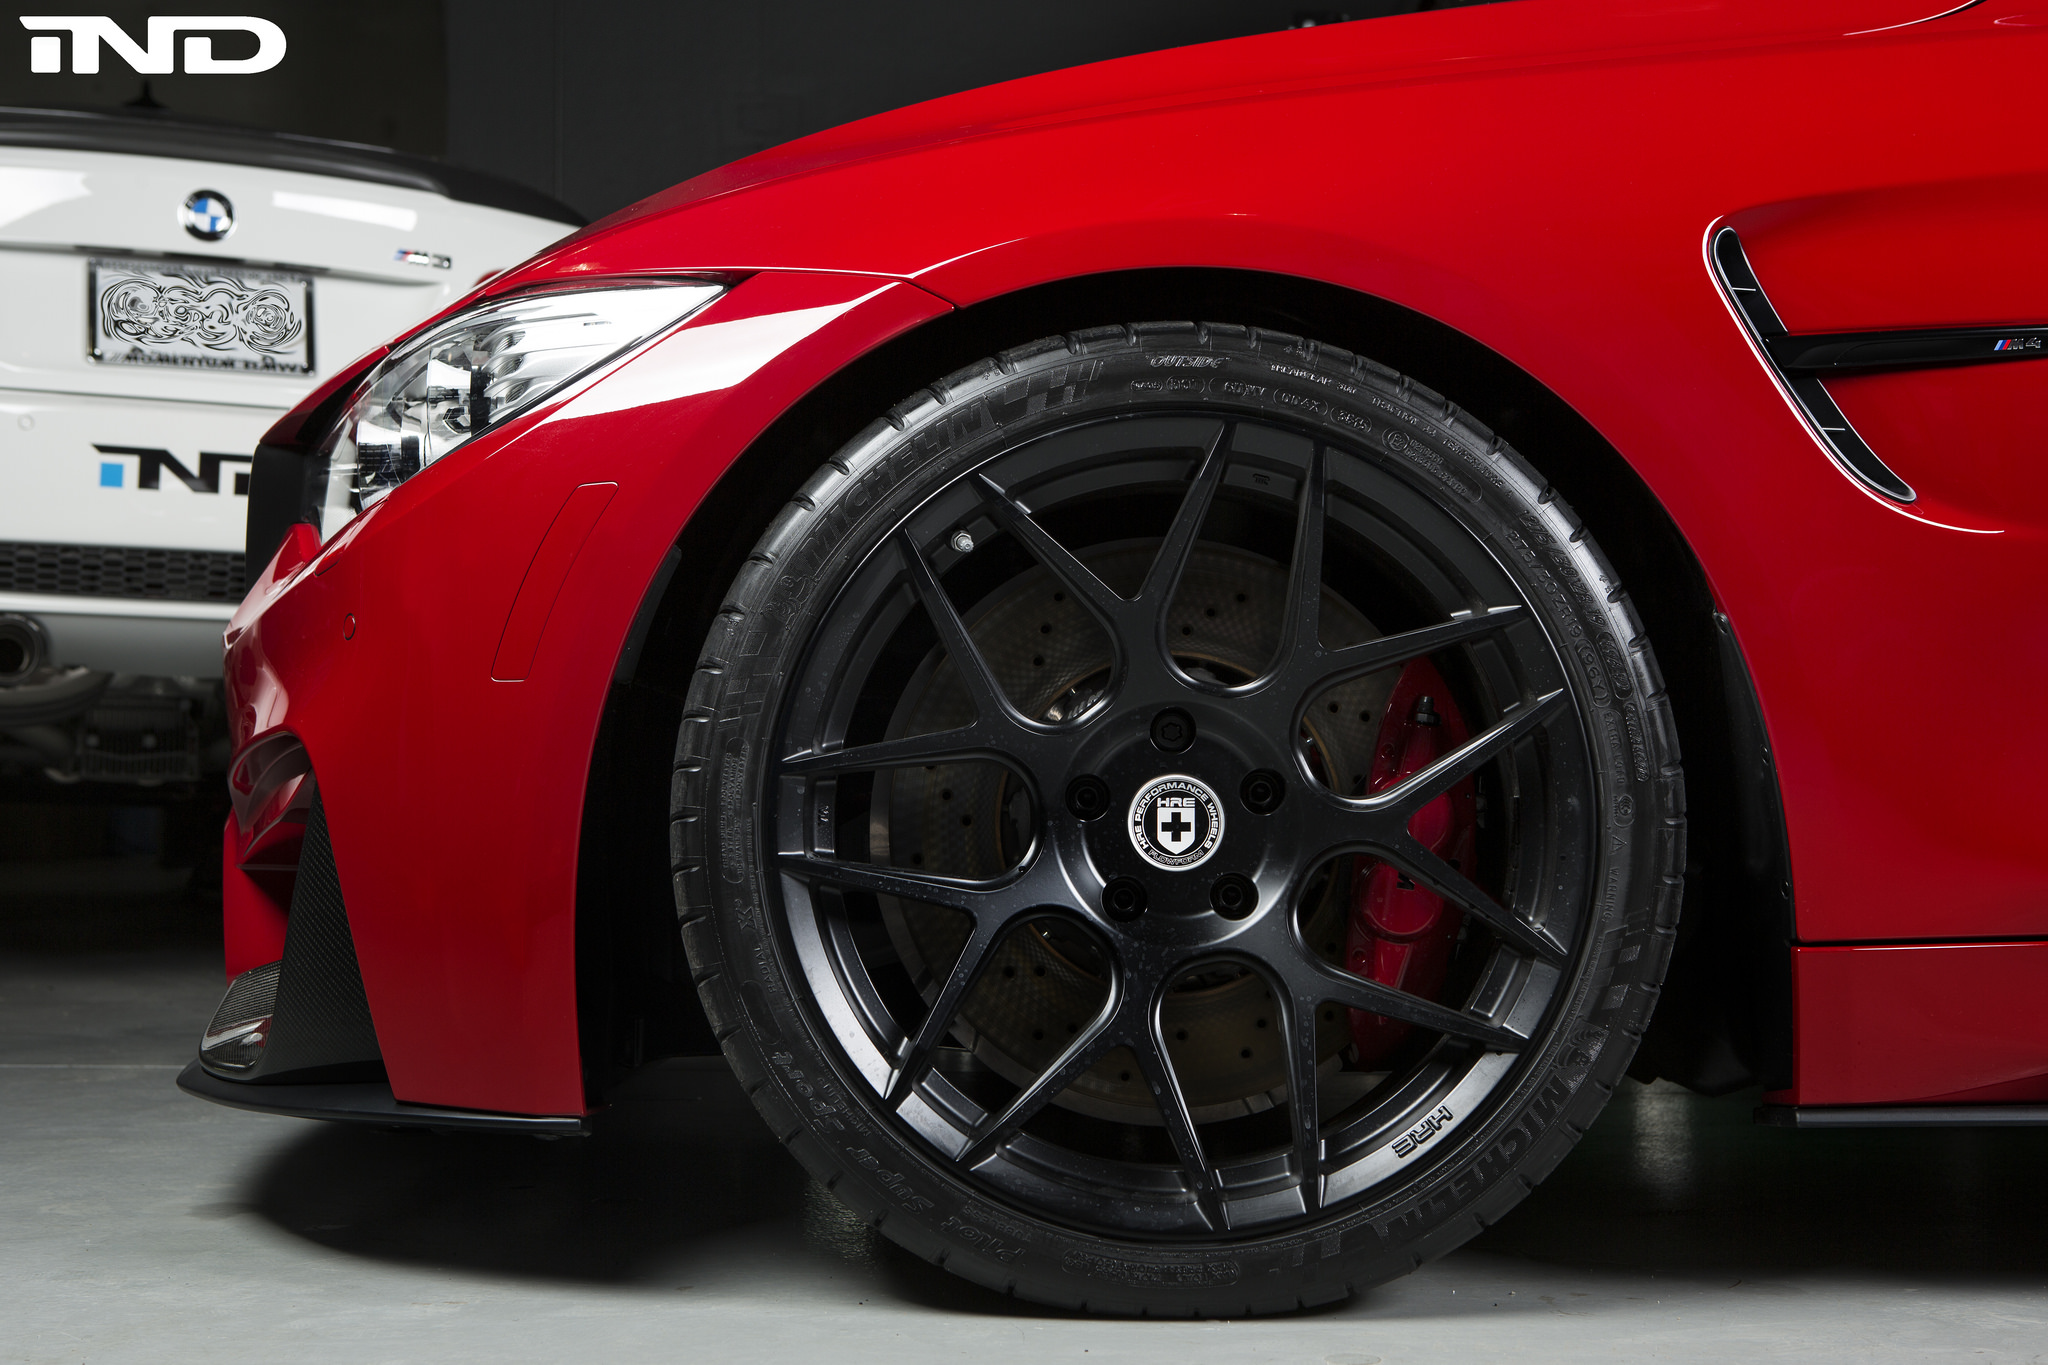 A Clean Imola Red BMW F82 M4 Project 4